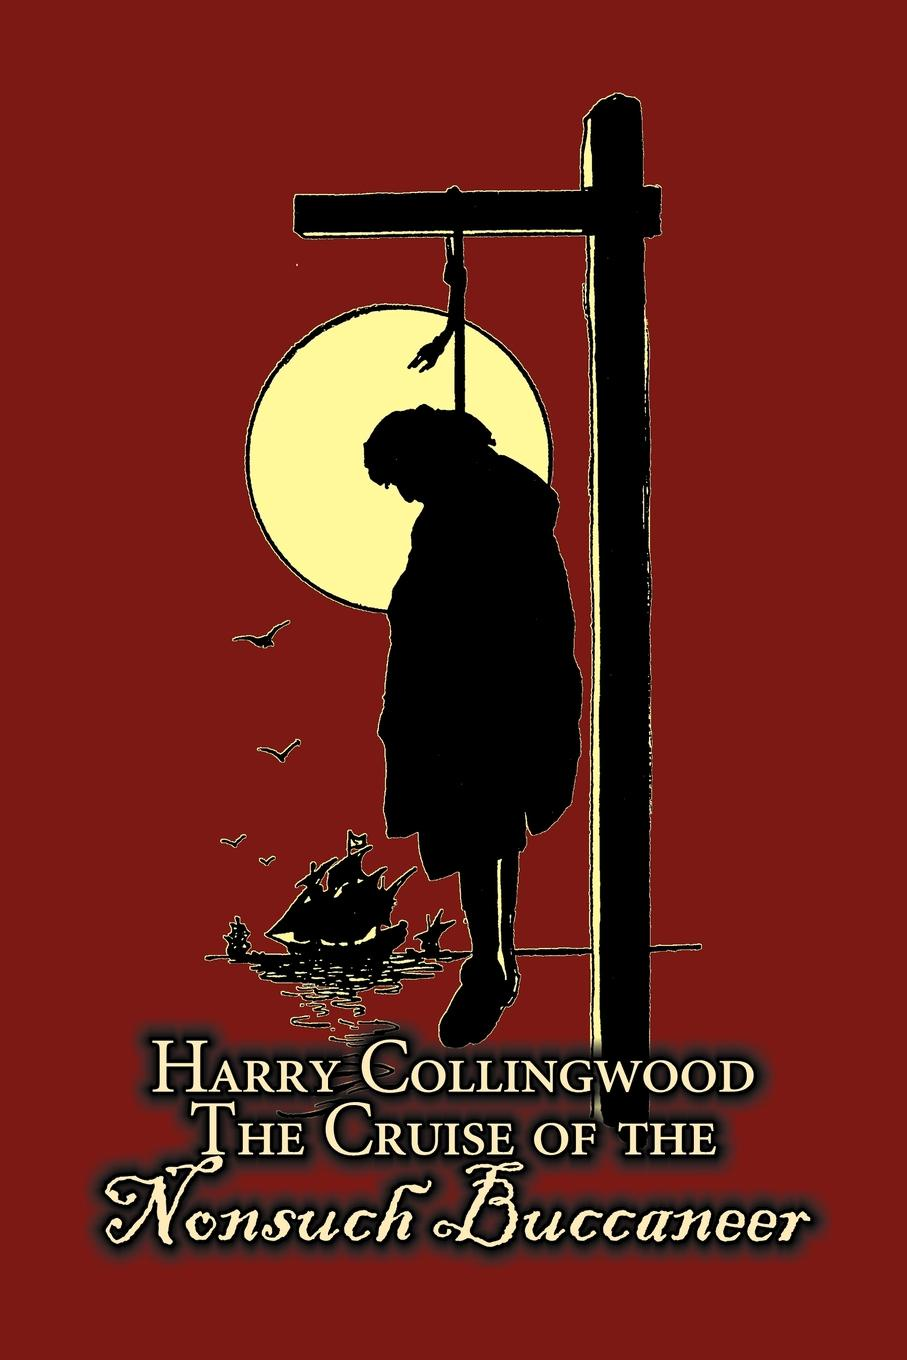 Harry Collingwood The Cruise of the Nonsuch Buccaneer by Harry Collingwood, Fiction, Action & Adventure george tsappis the propitiators